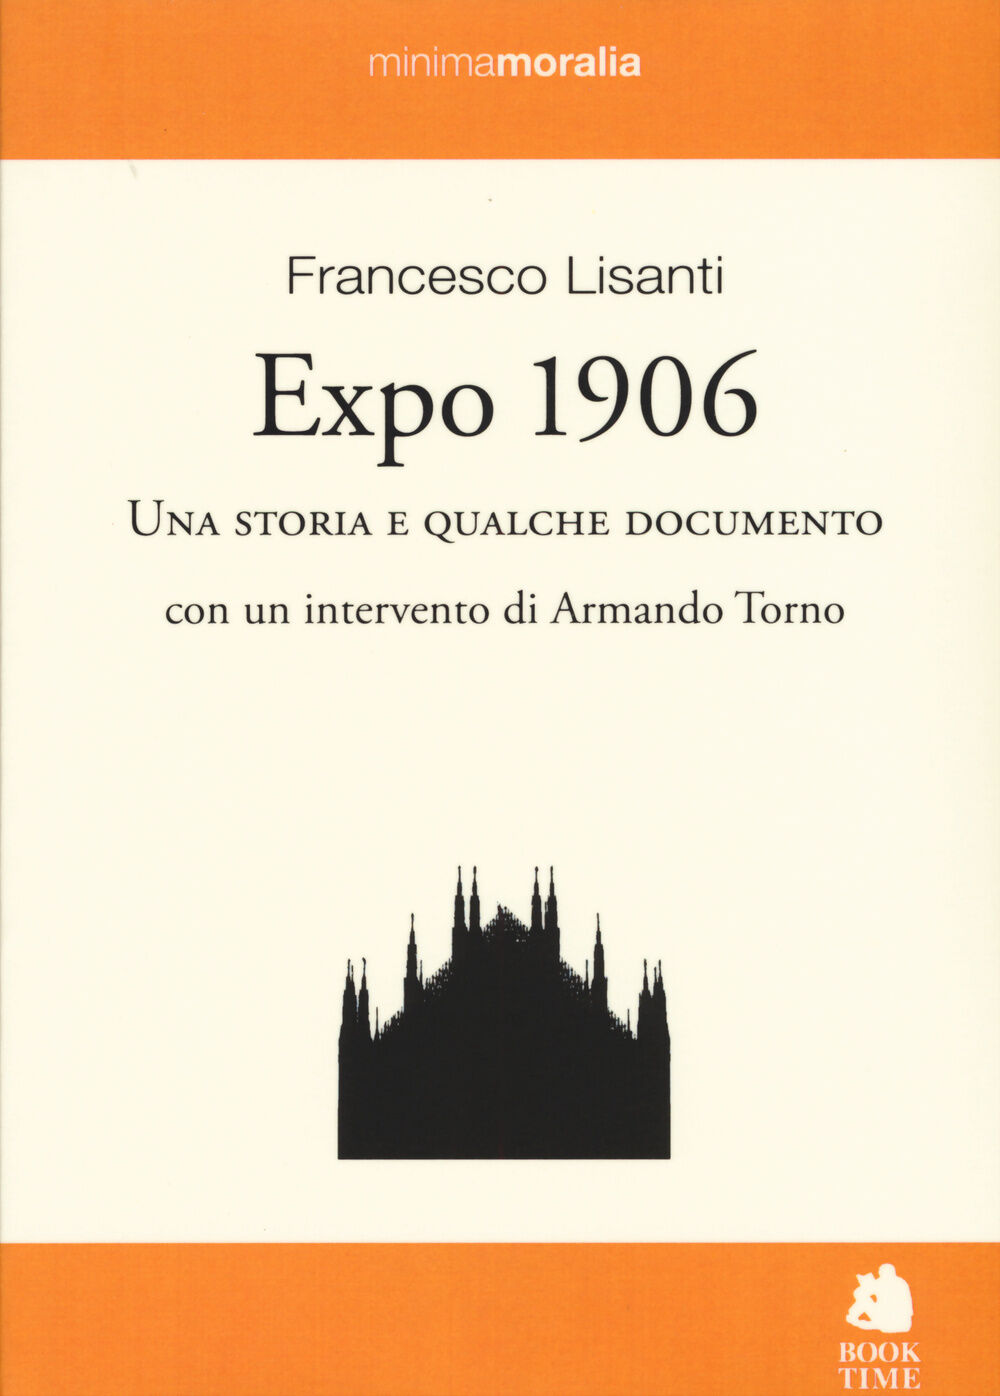 Expo 1906. Una storia e qualche documento